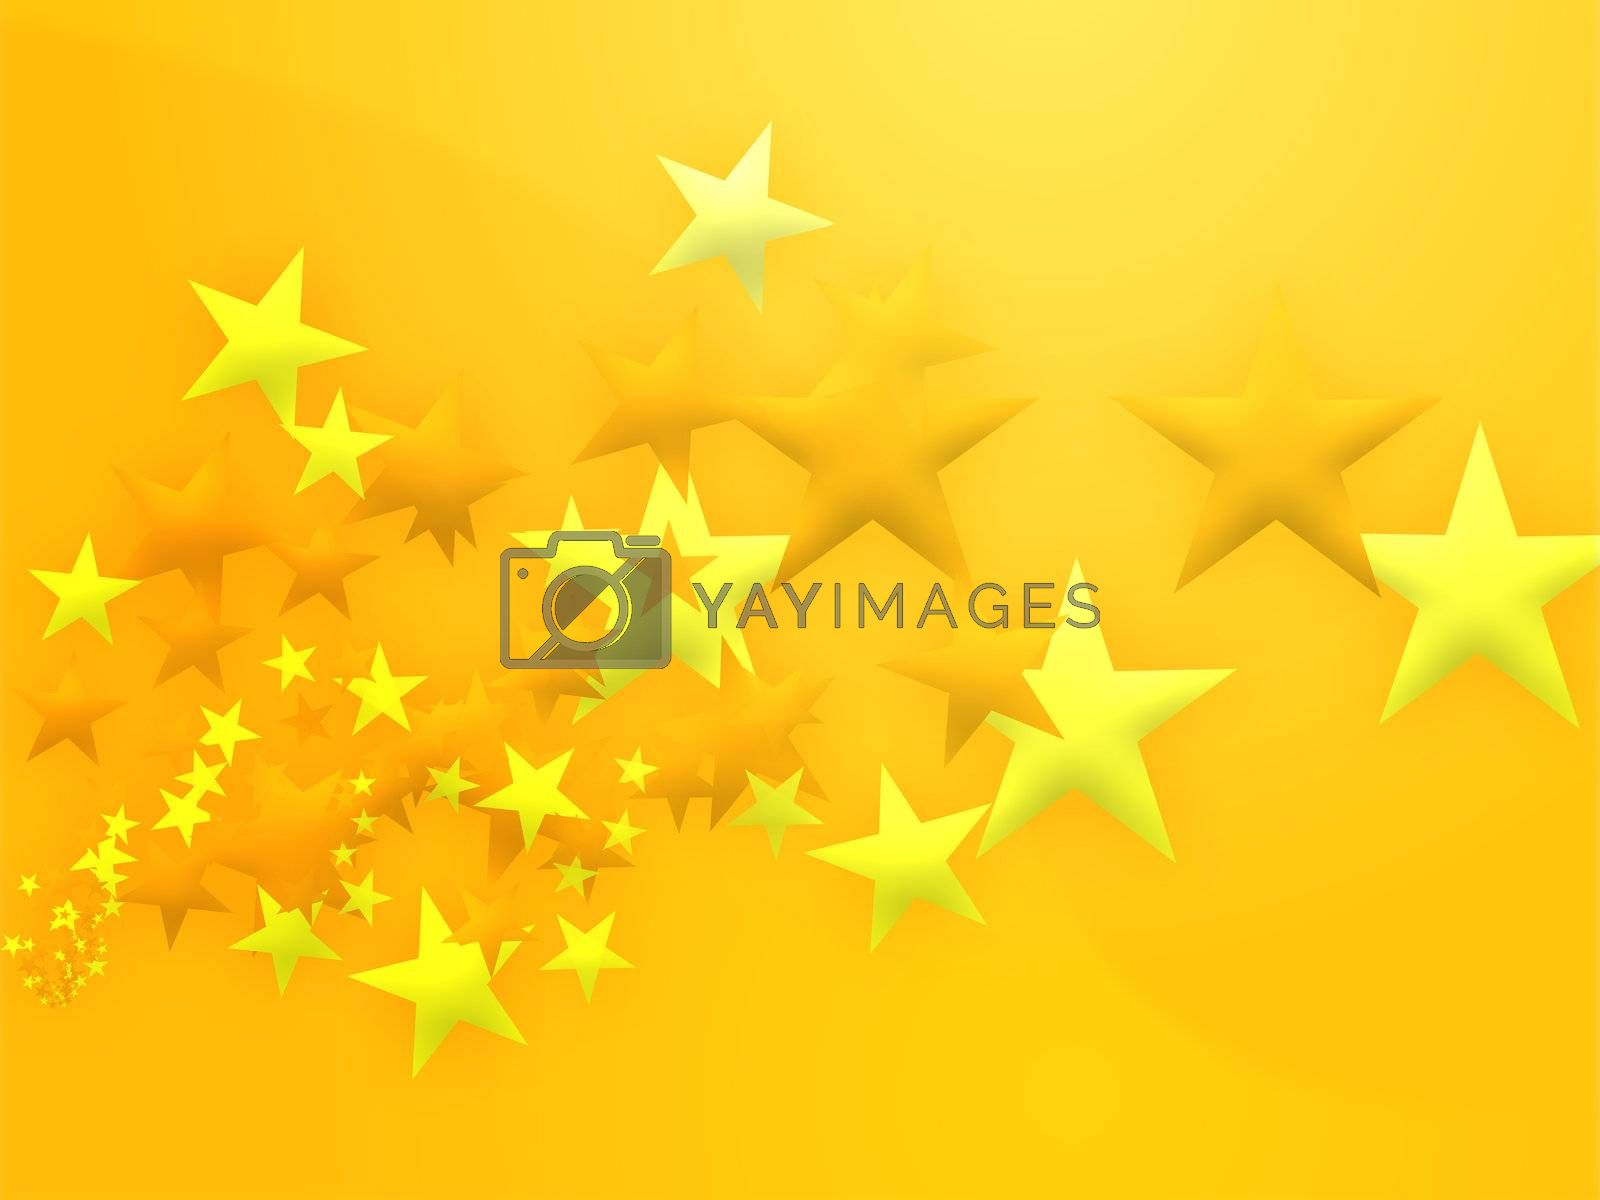 Royalty free image of Flying stars illustration by kgtoh